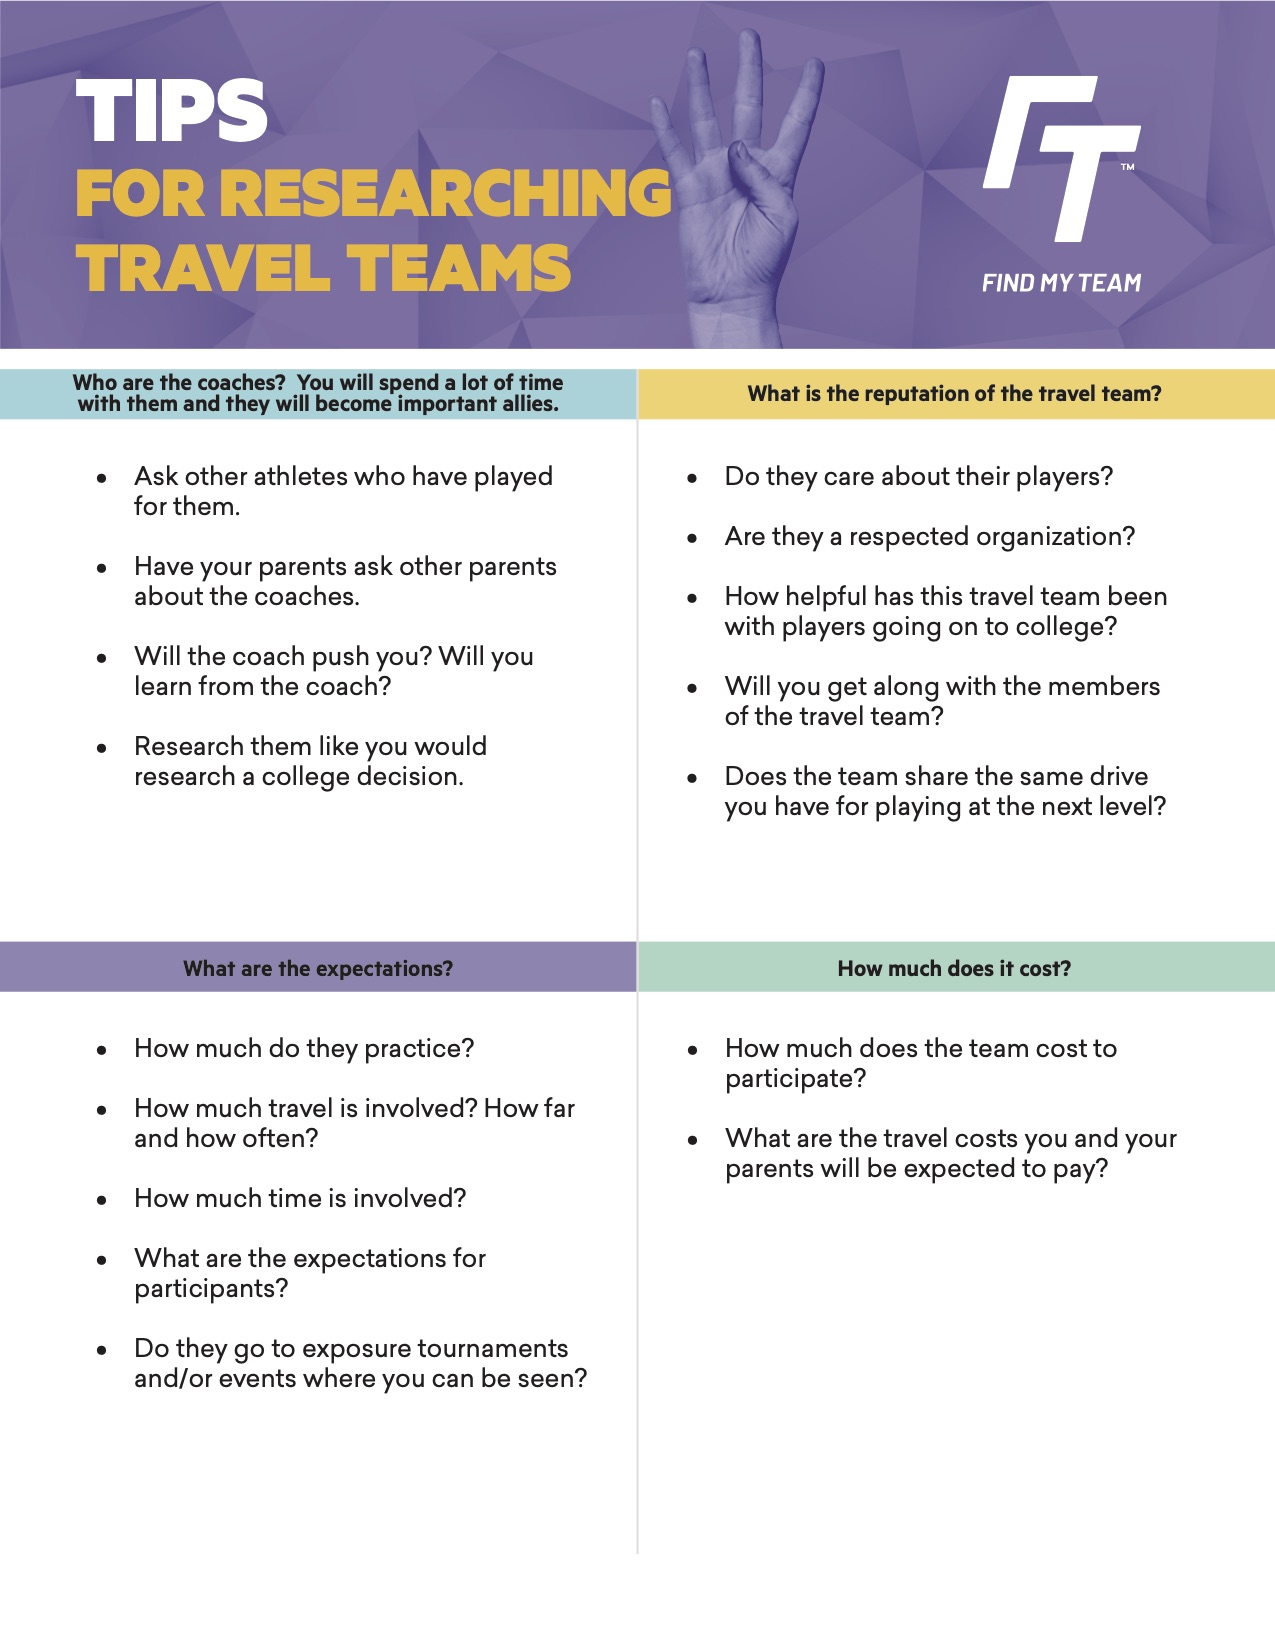 Tips for researching travel teams guide